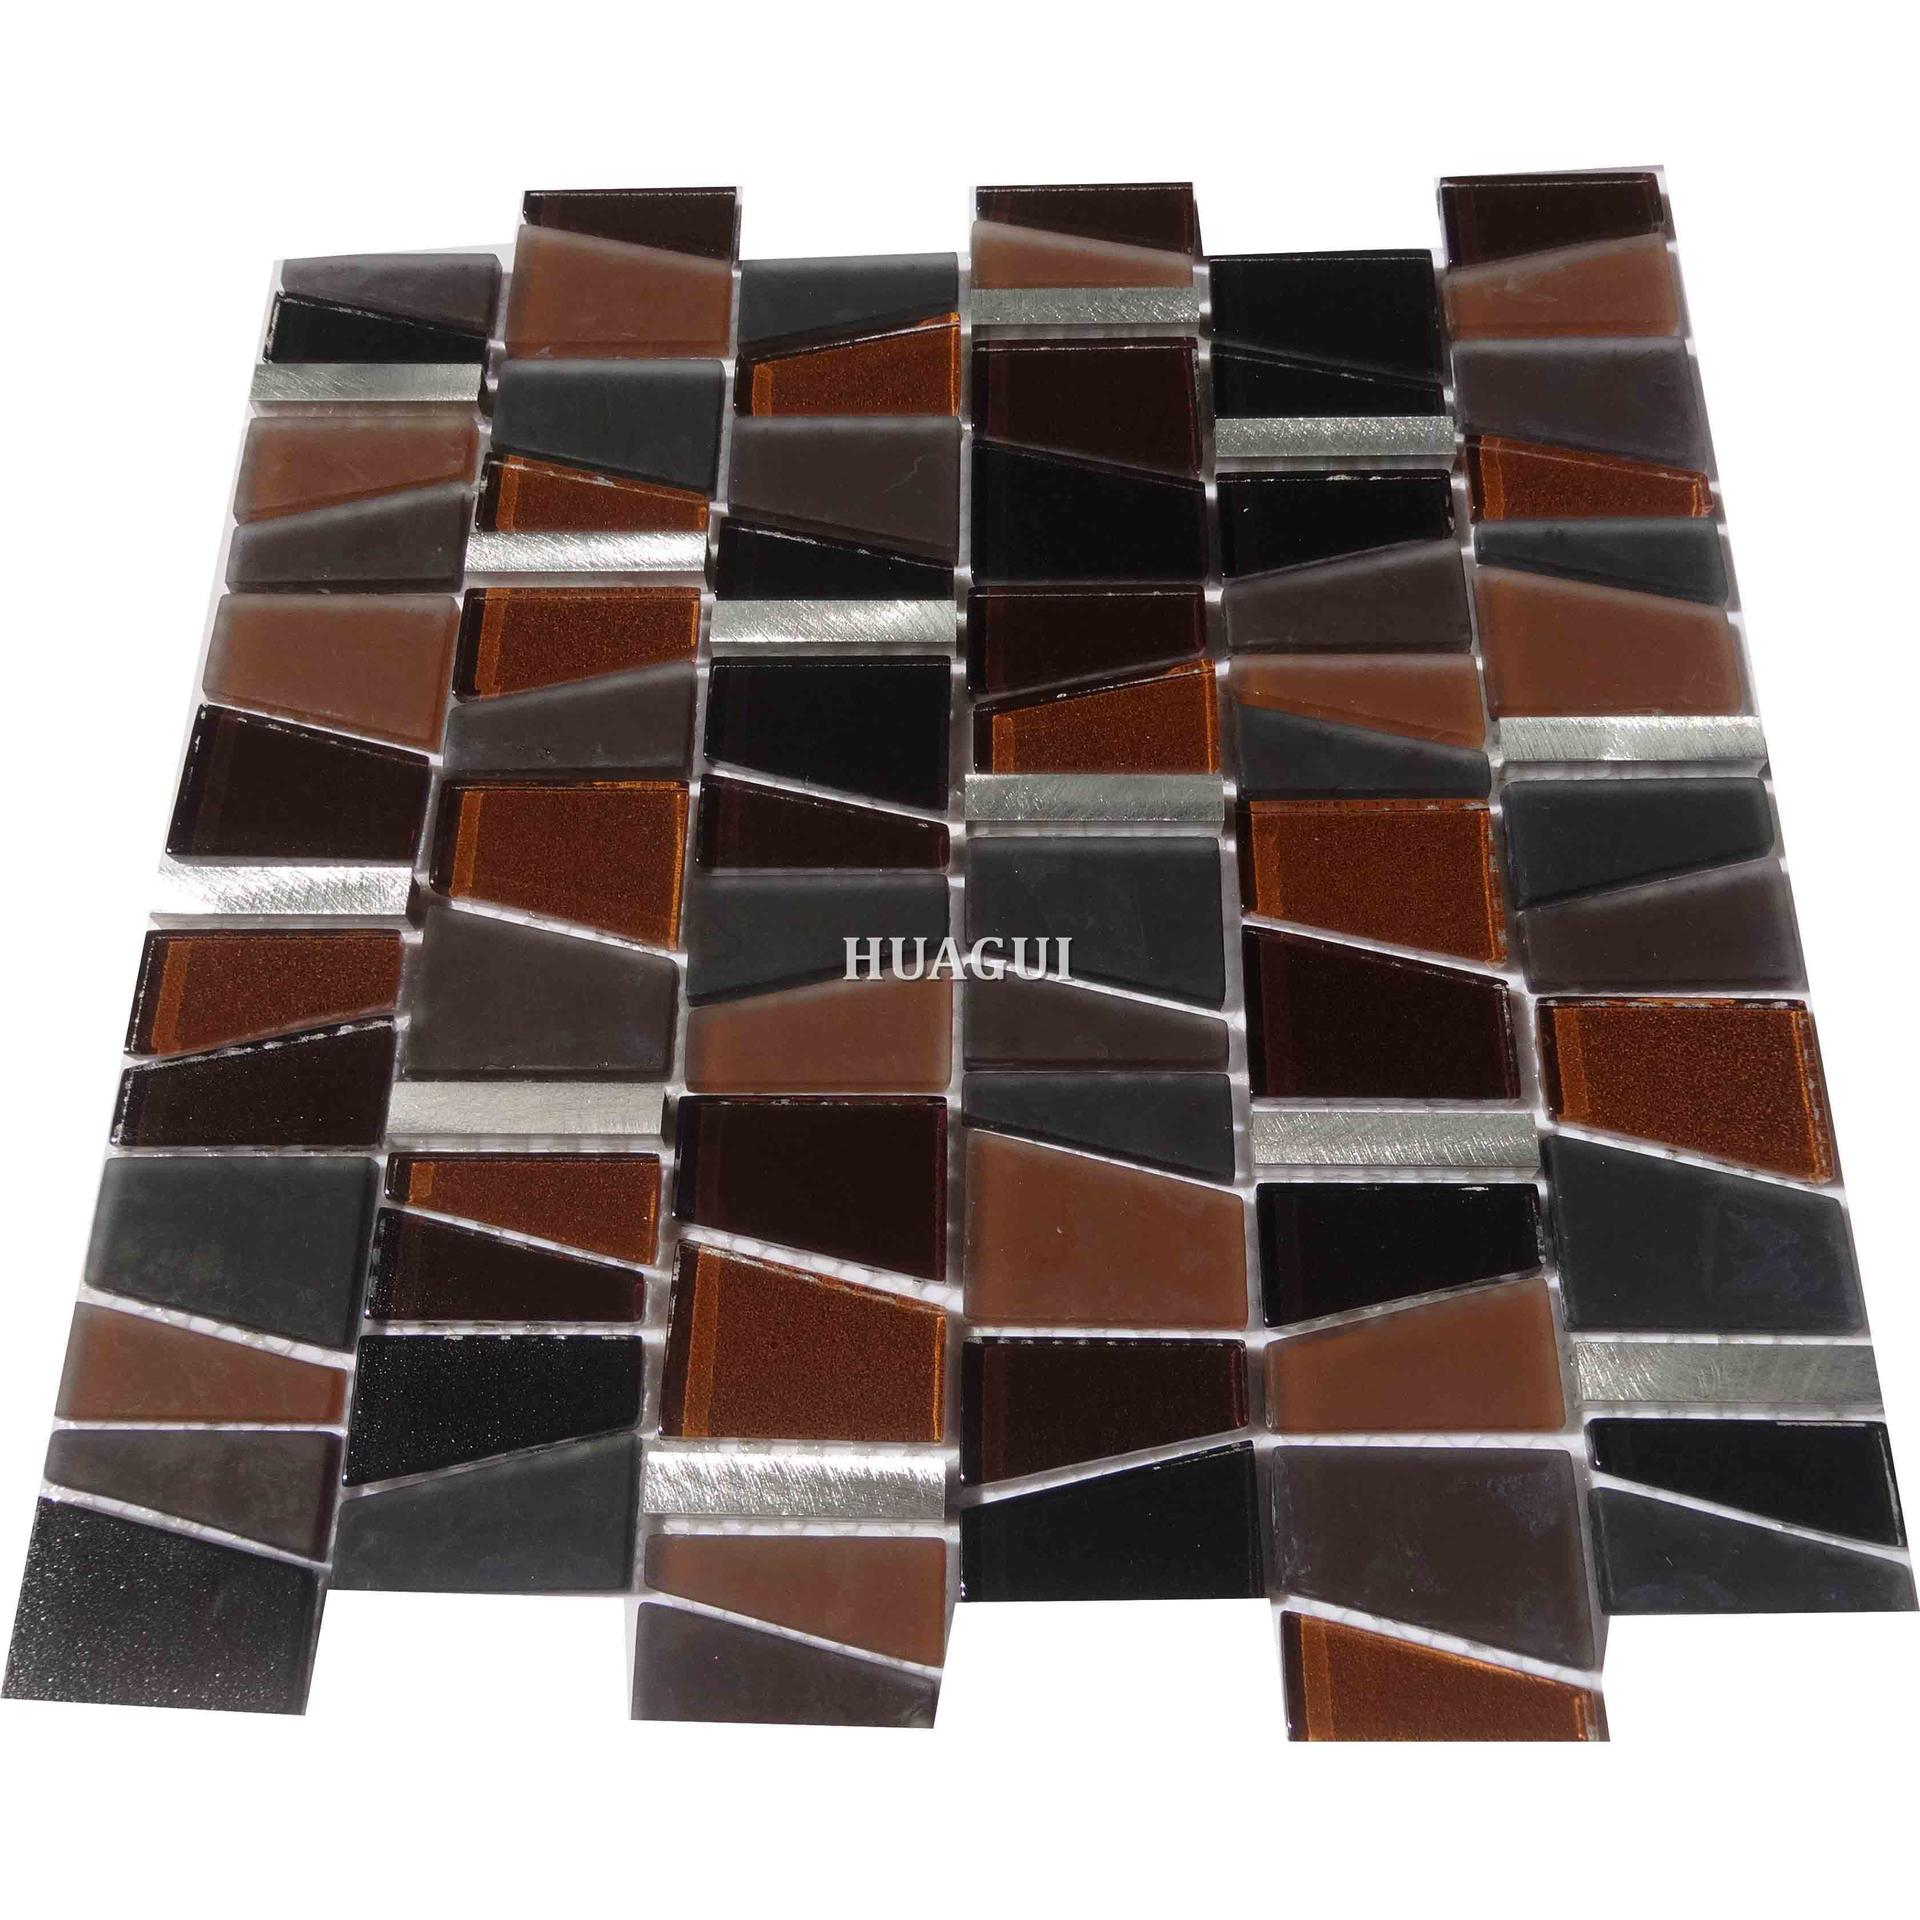 Brown color glass tile mixed with silver aluminum mosaic